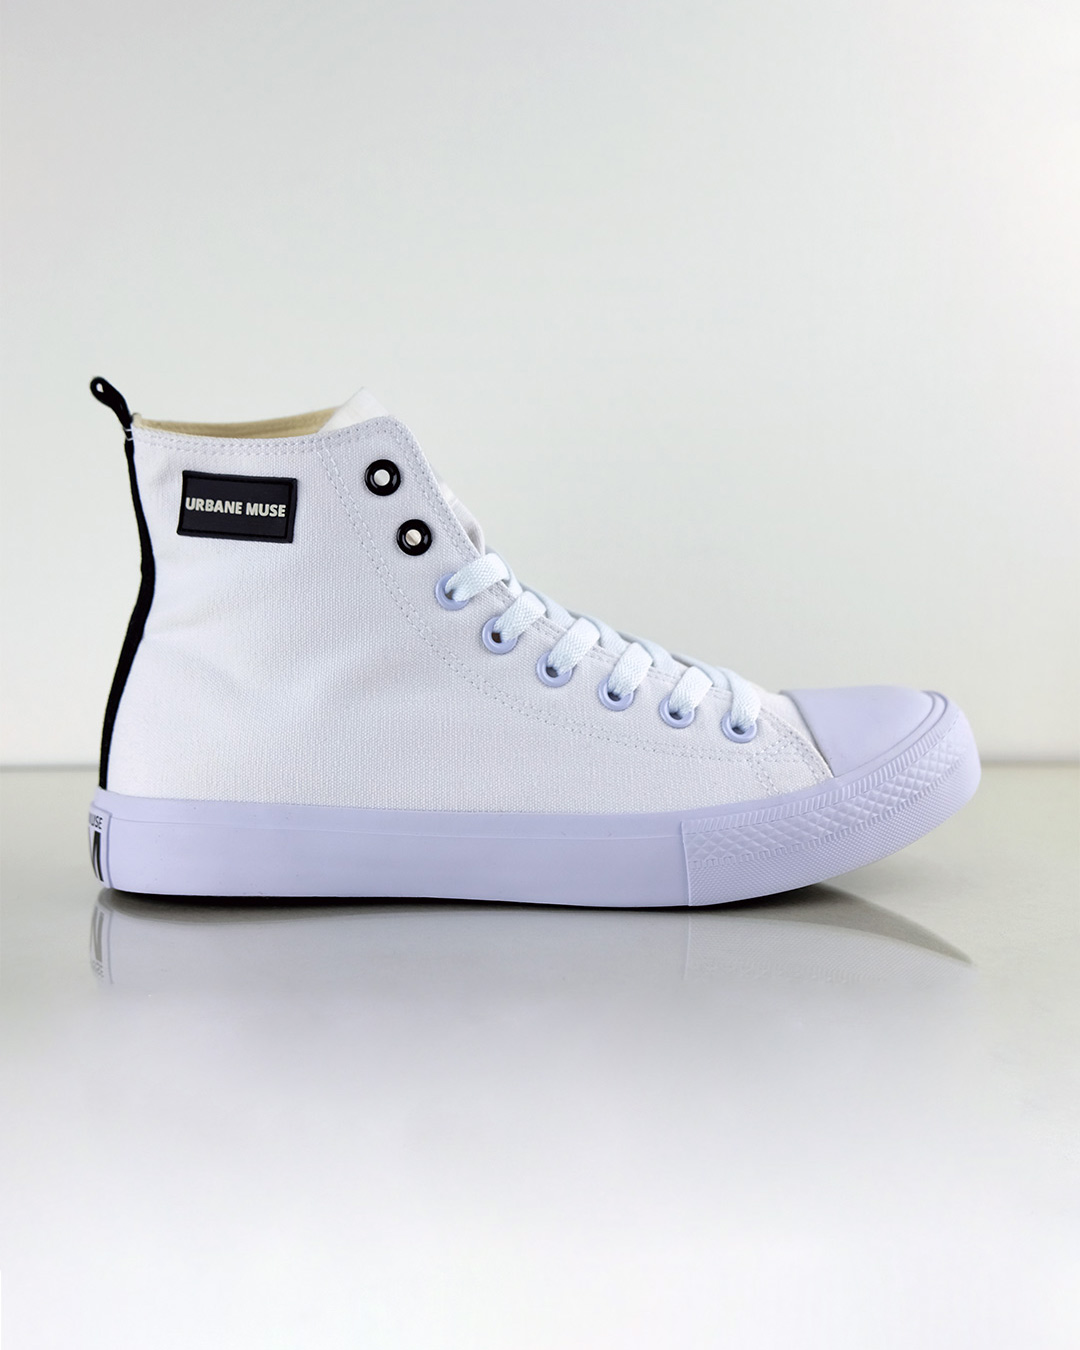 photo-1b-URBANE-MUSE-CANVAS-SNEAKER